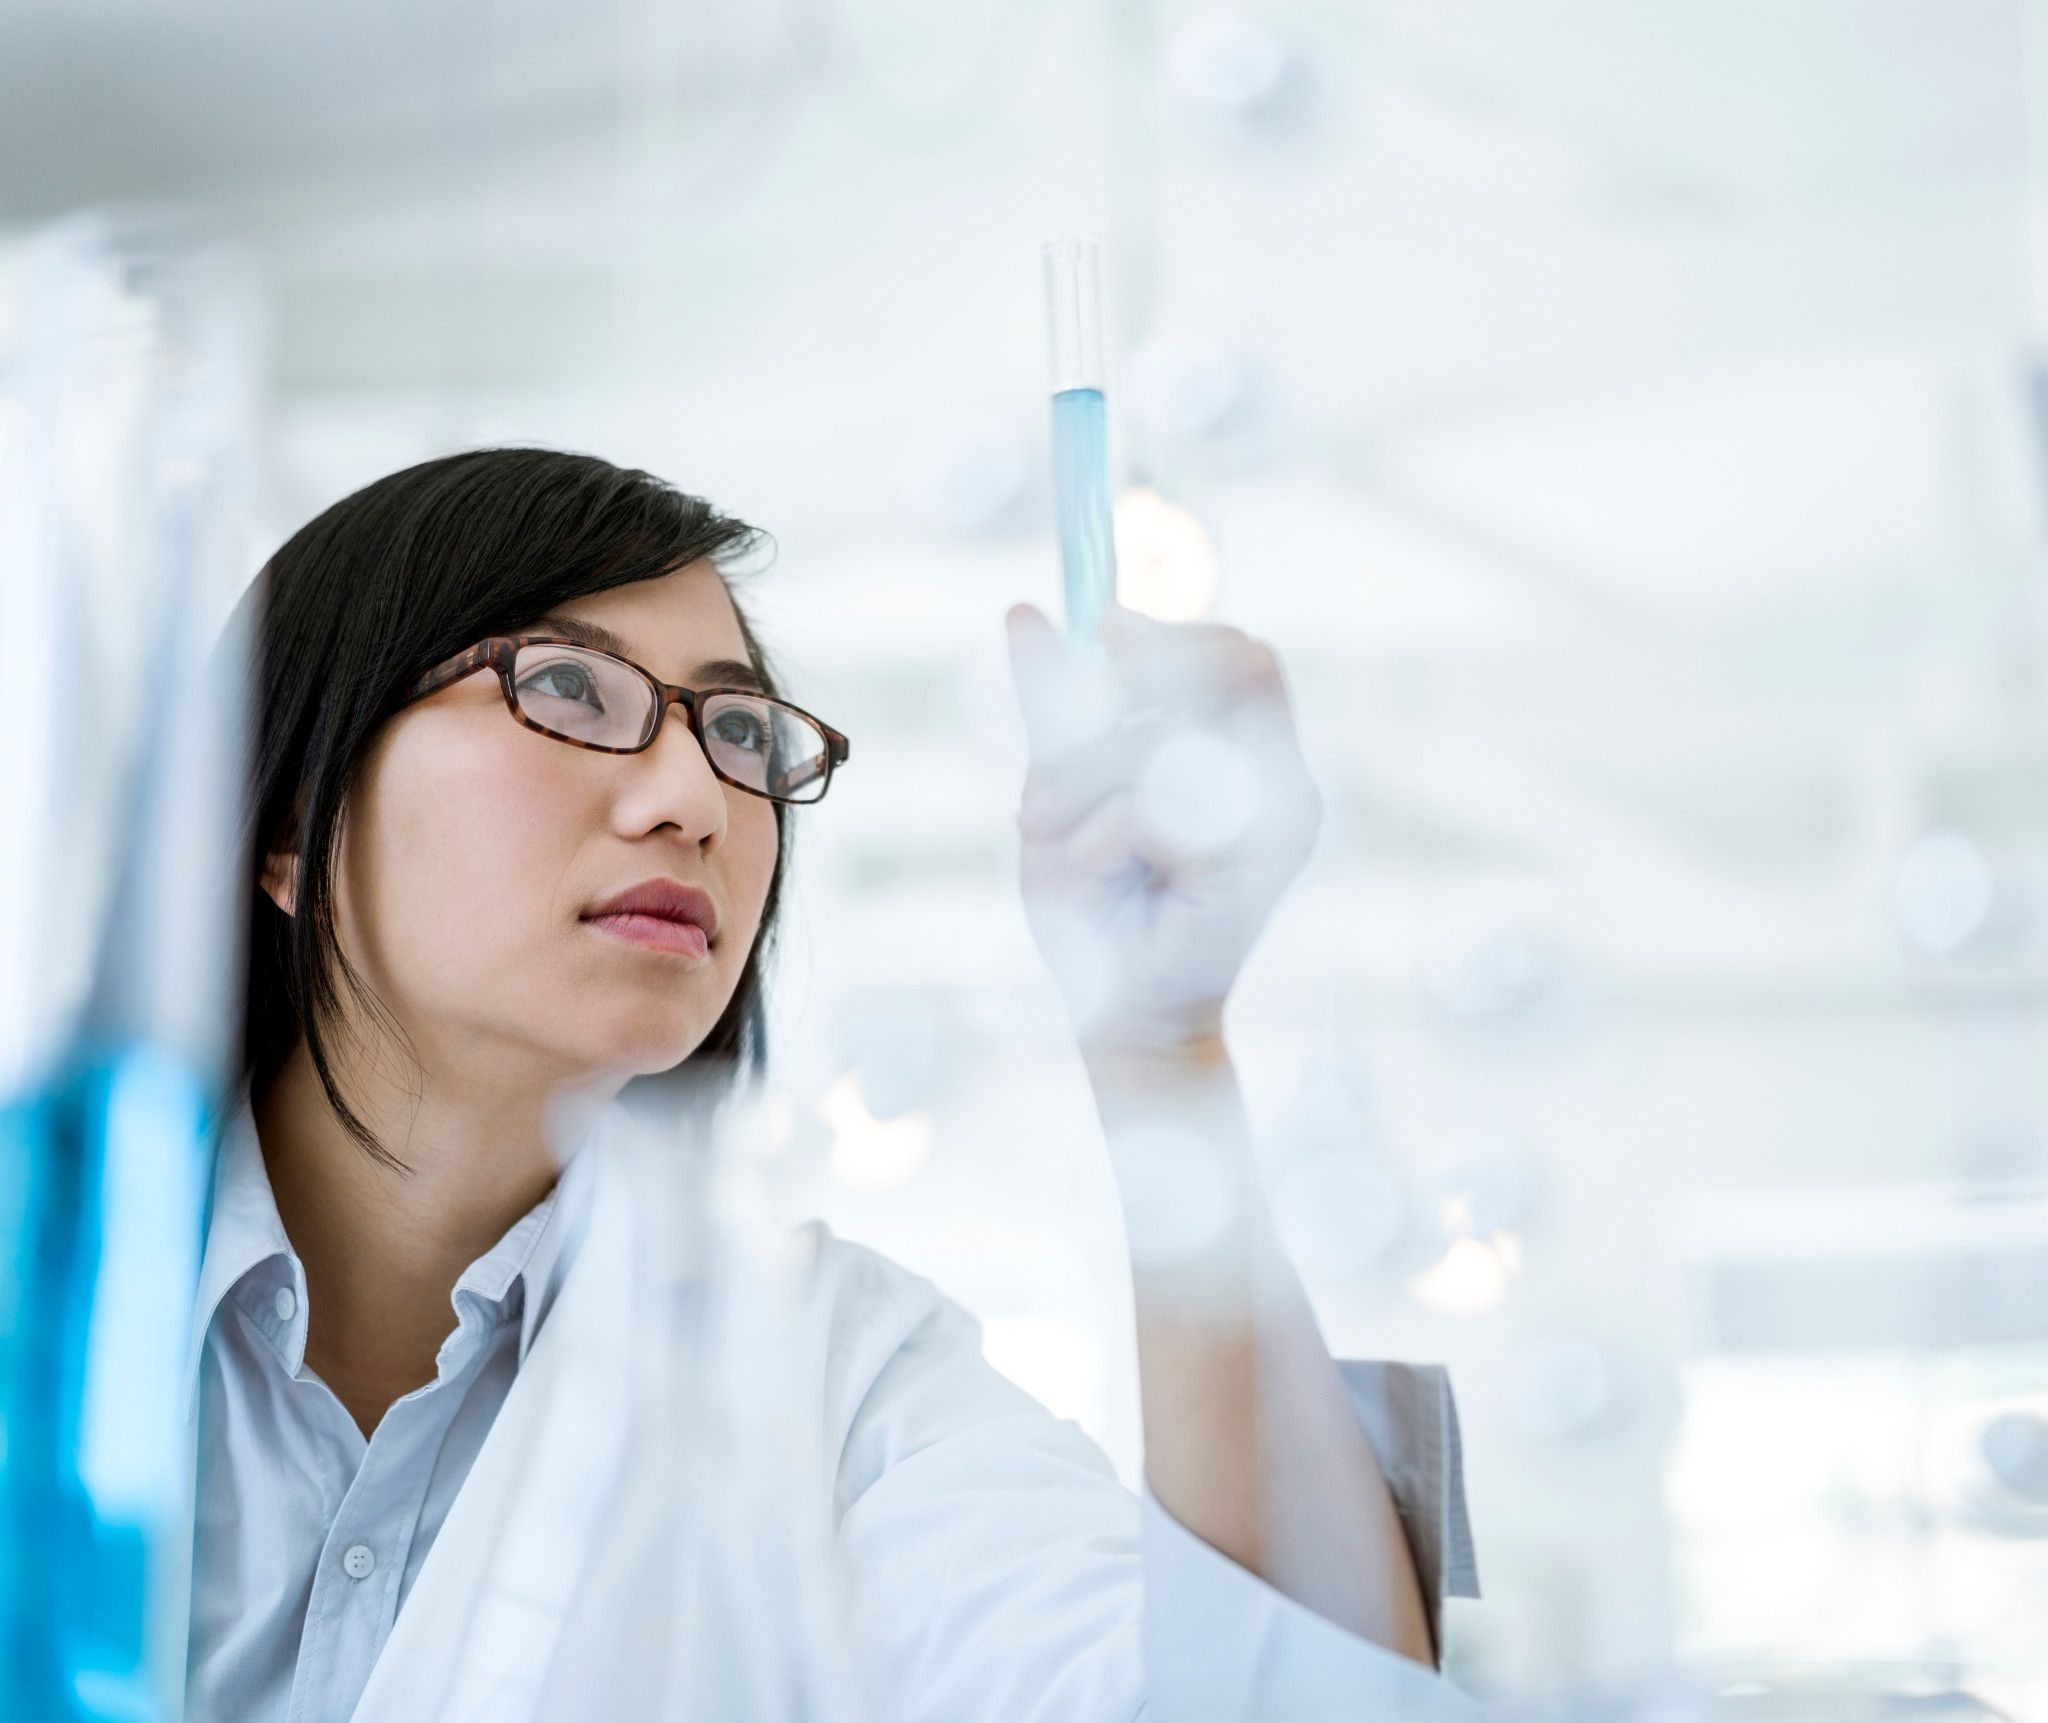 Scientist with glasses in a lab coat looking at a test tube full of blue liquid.